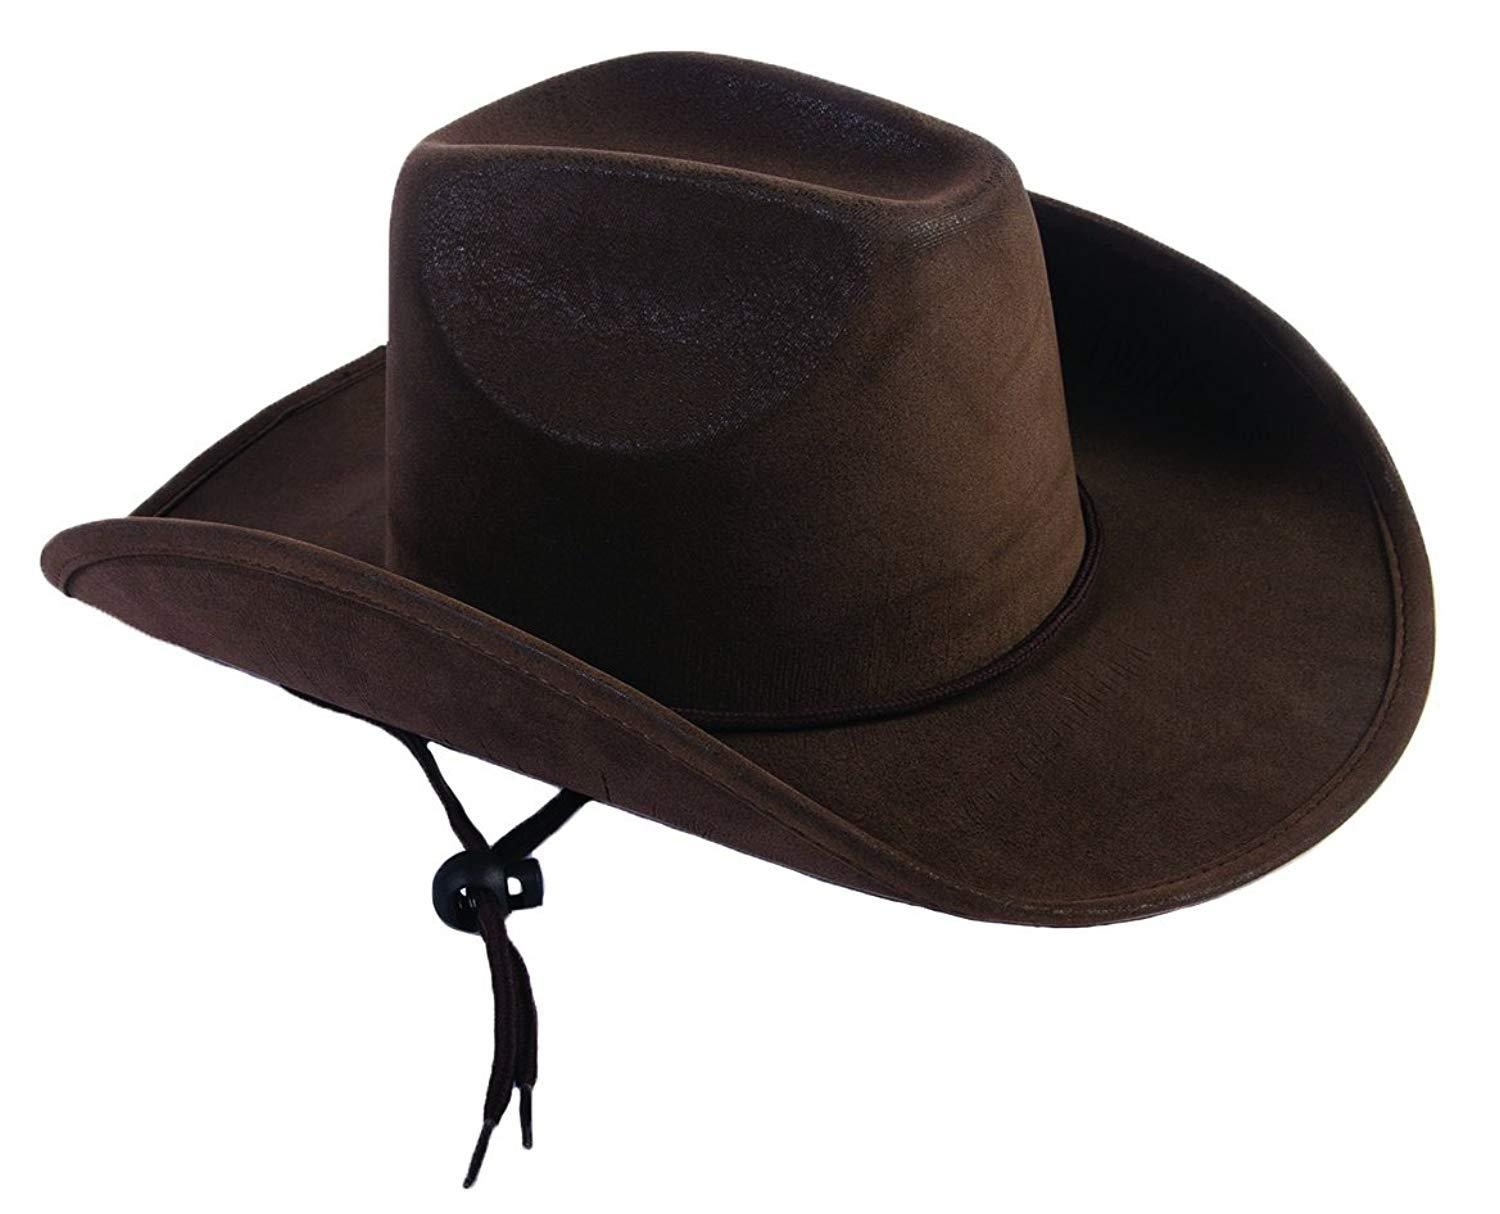 ad5b14d522d3b Wild West Cowboy Children s Hat Accessory - and 50 similar items